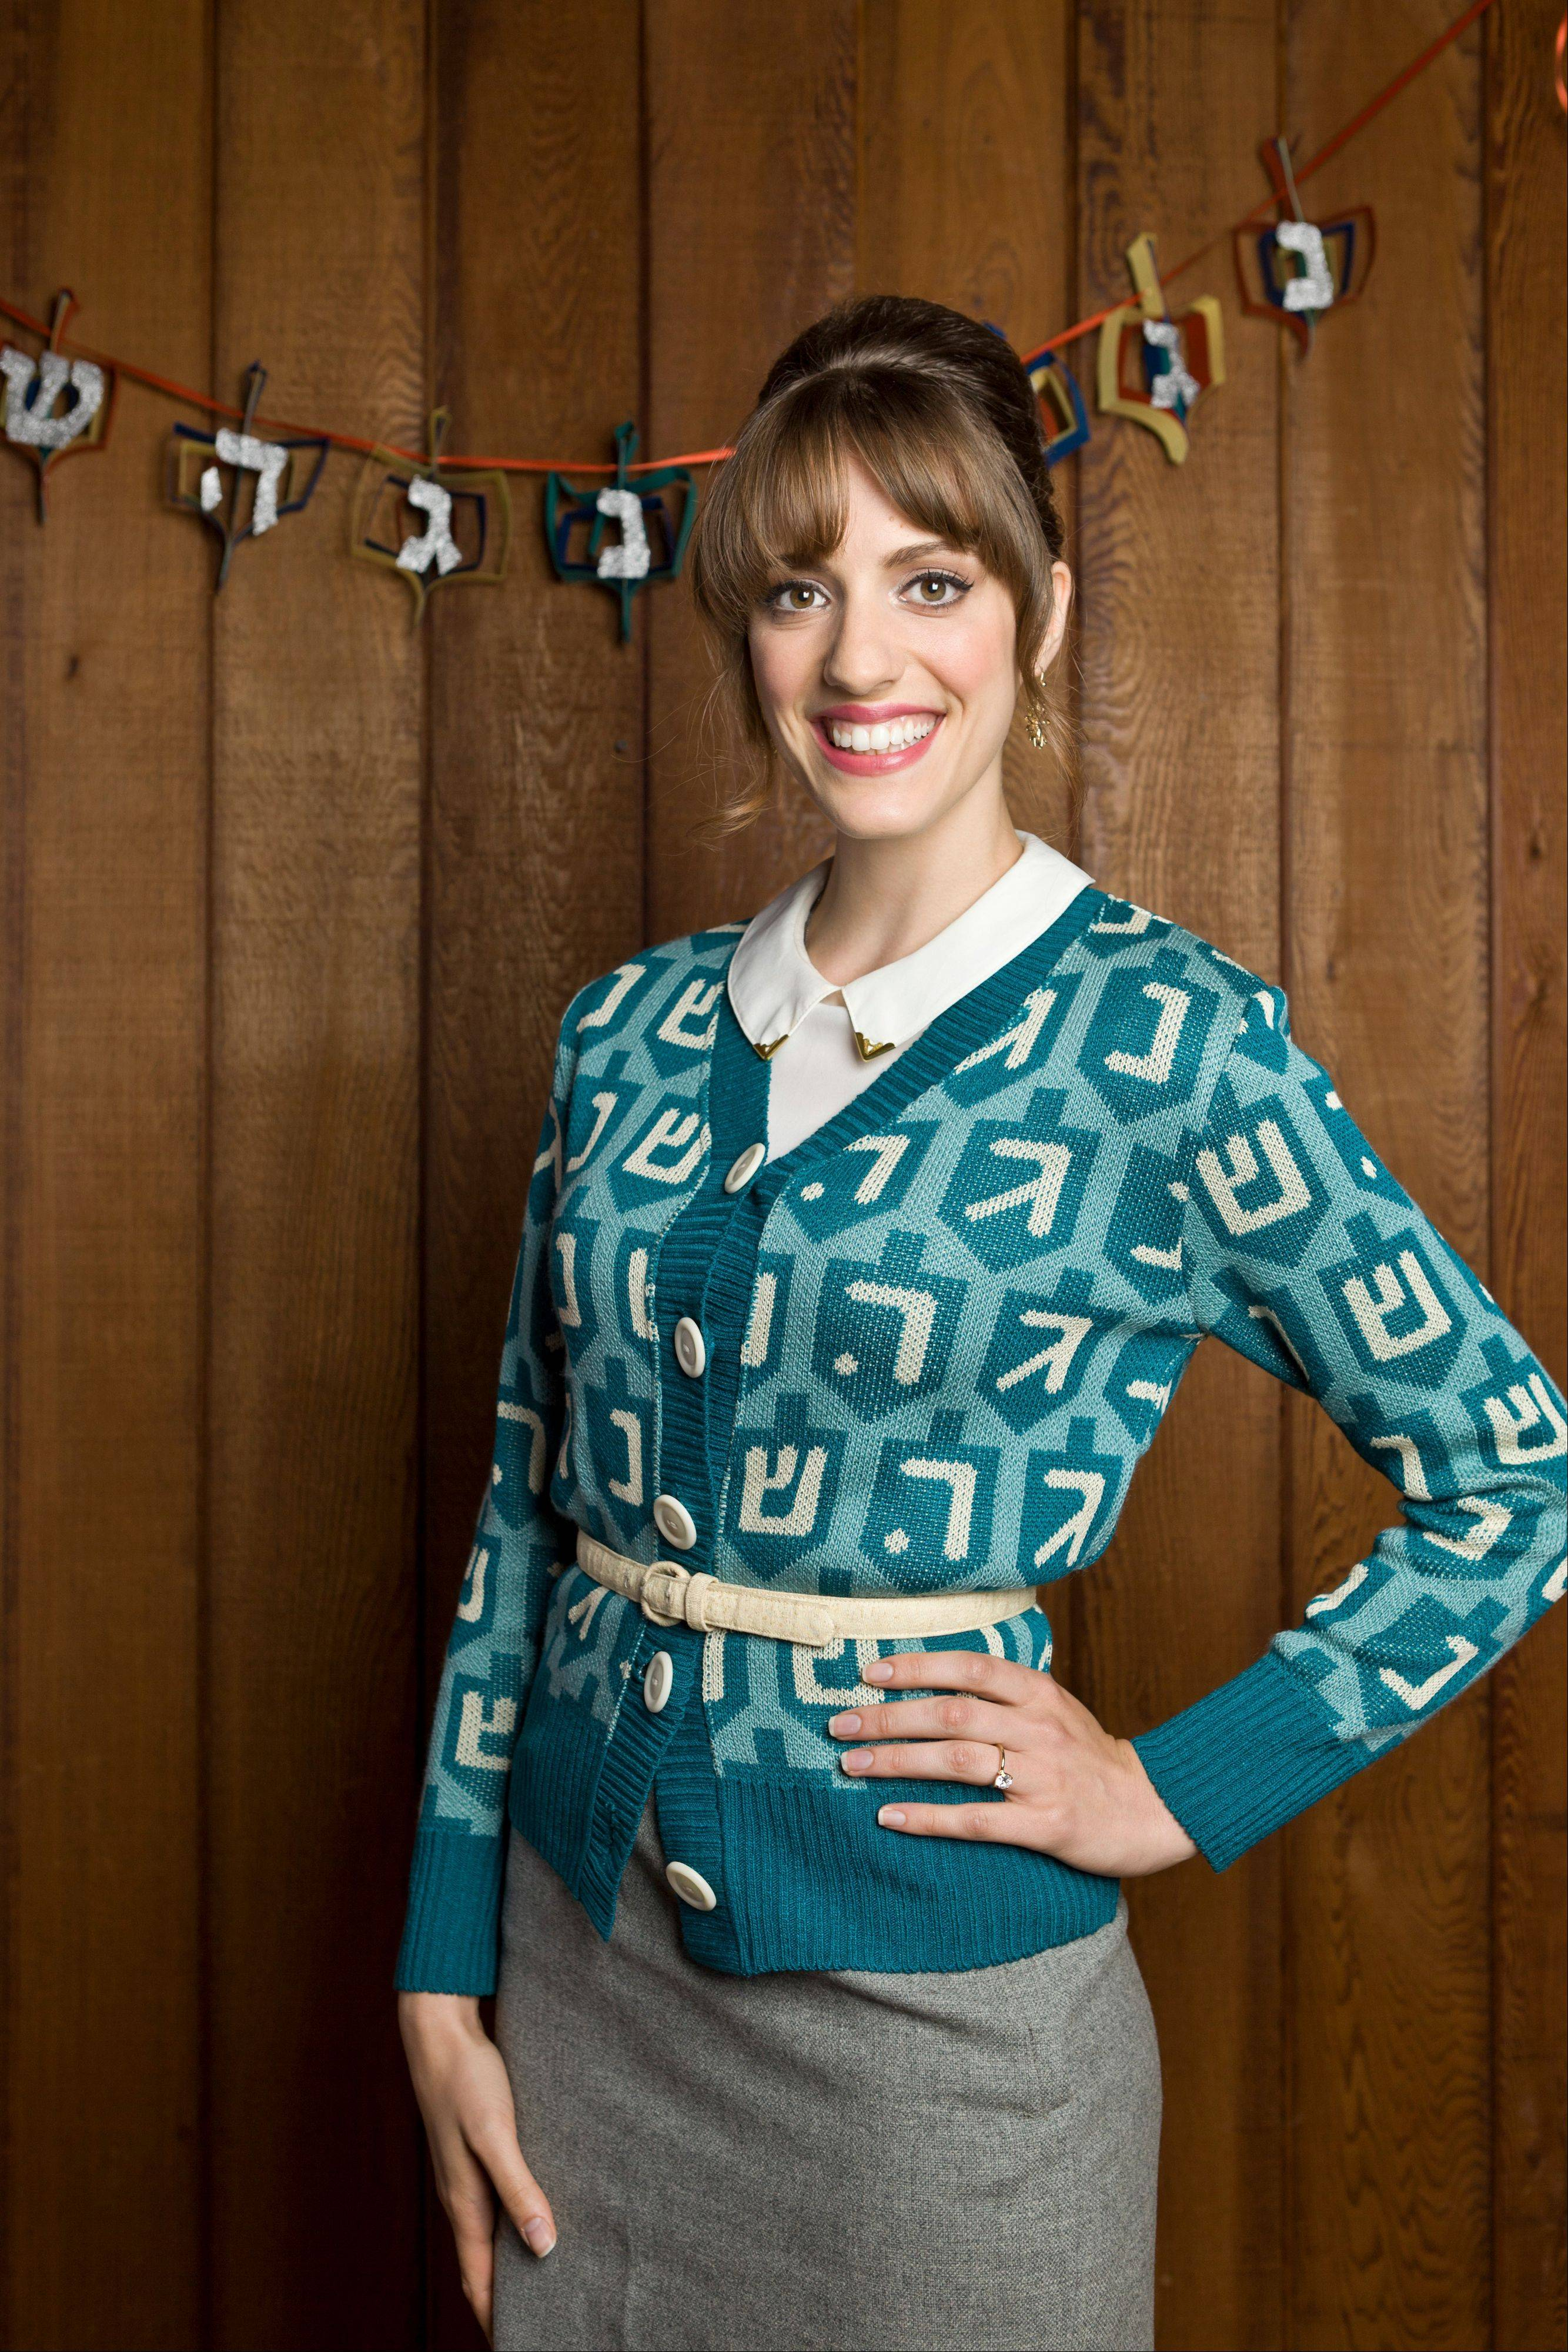 A holiday sweater decorated in a dradle print.